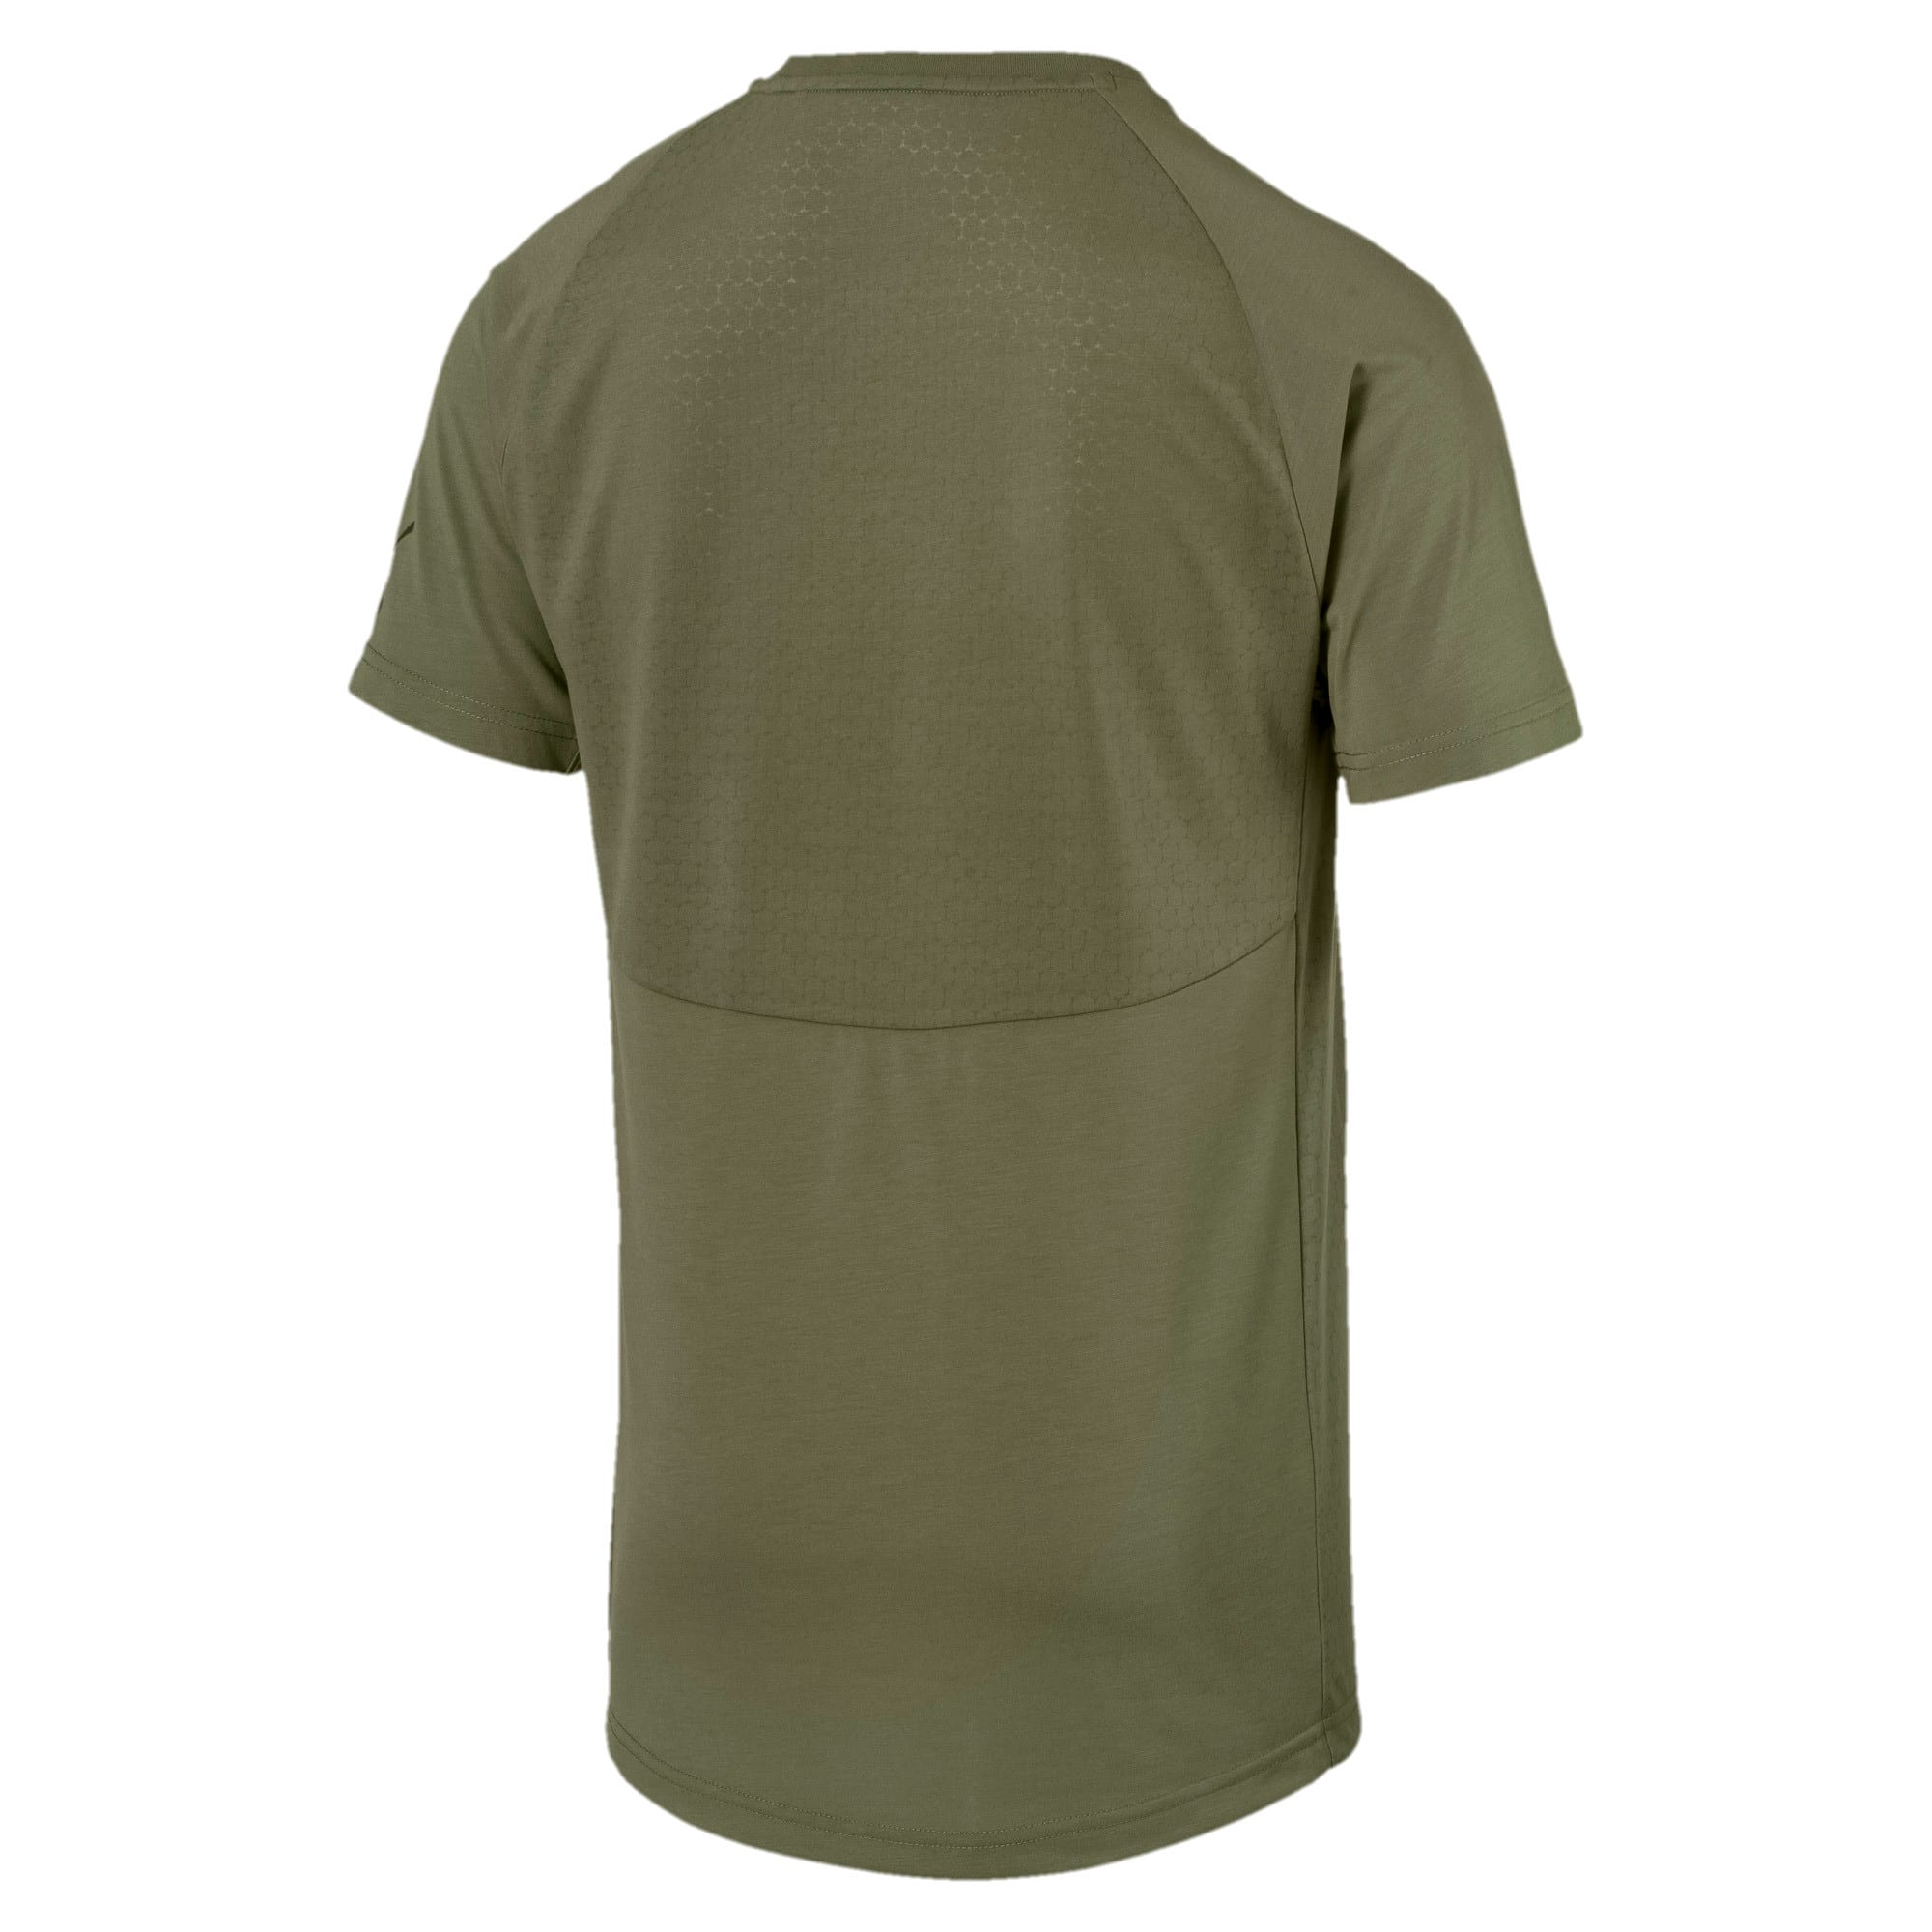 Thumbnail 2 of Evostripe Lite Men's Tee, Olivine, medium